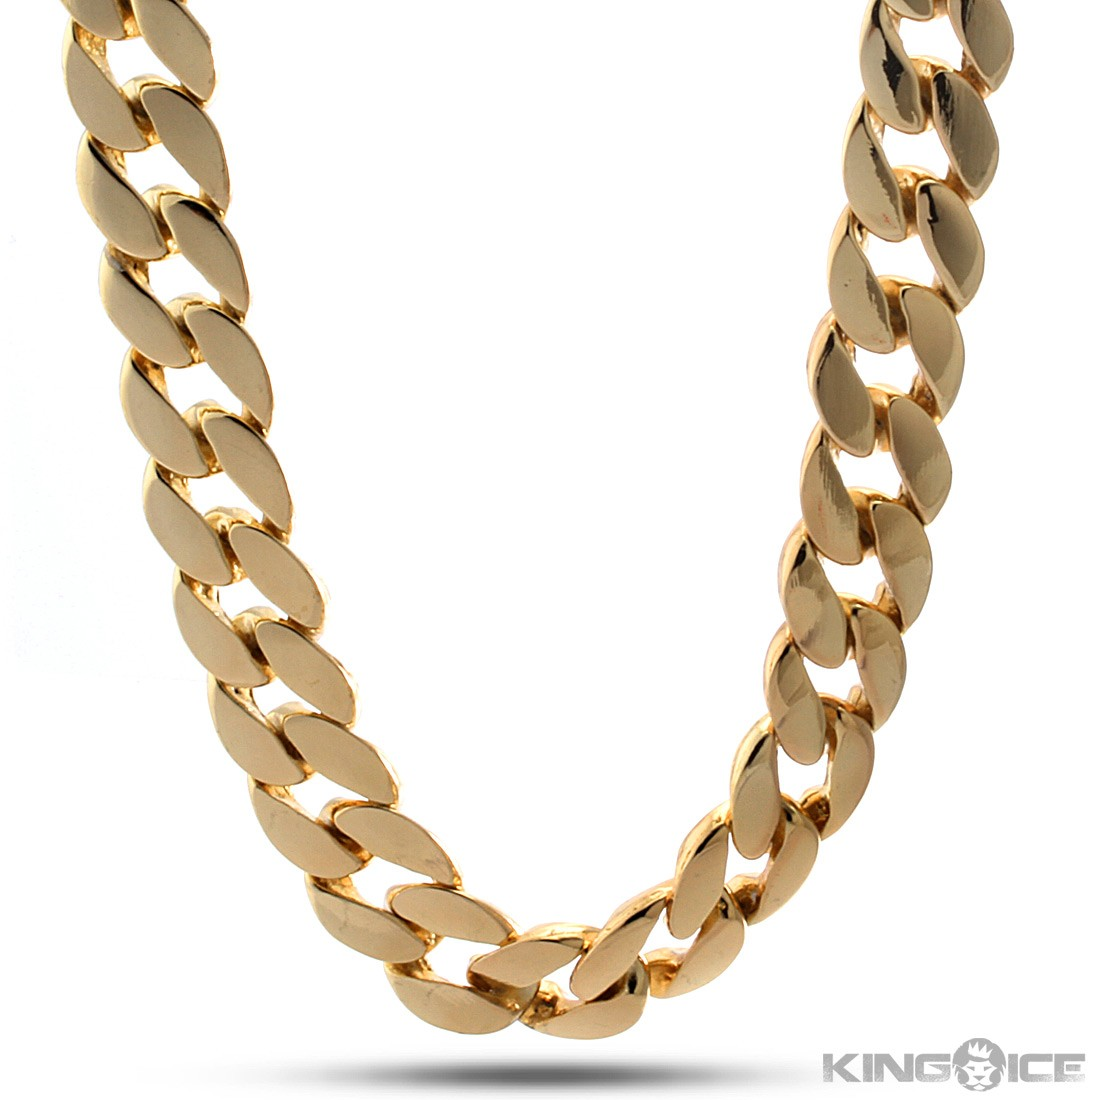 1100x1100 8 Gold Chain Vector Images Vector Gold Chain Necklace, Cuban Gold